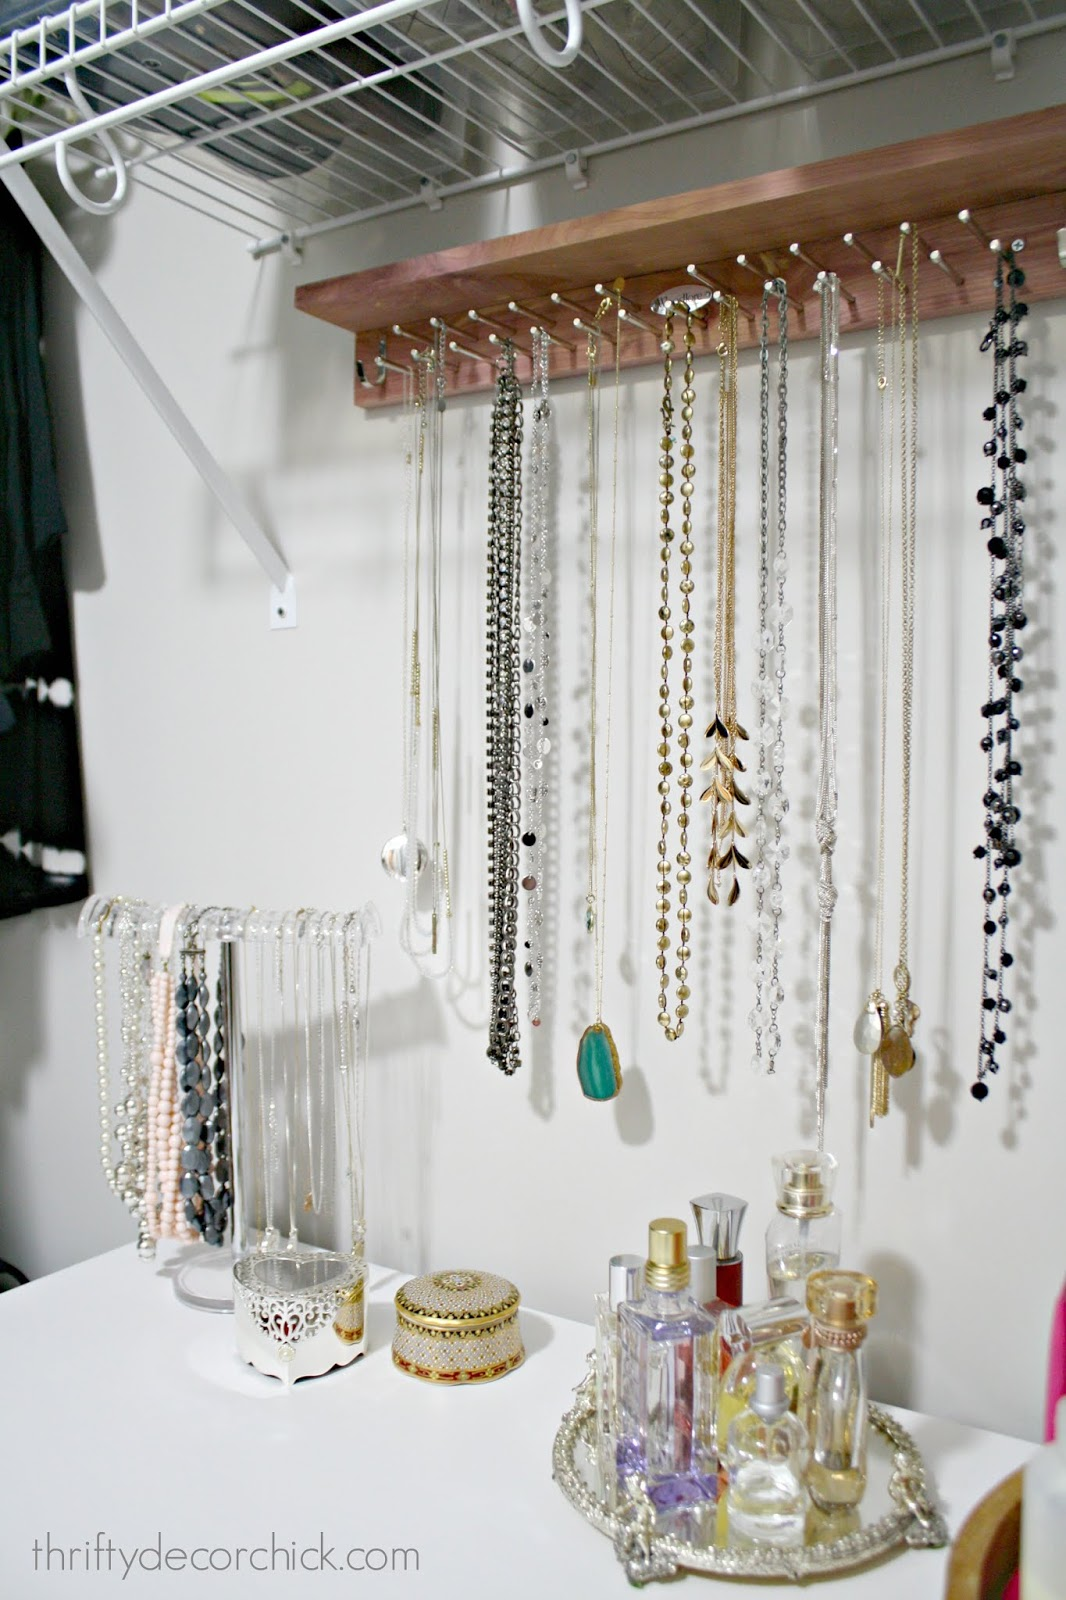 Storage for long and short necklaces